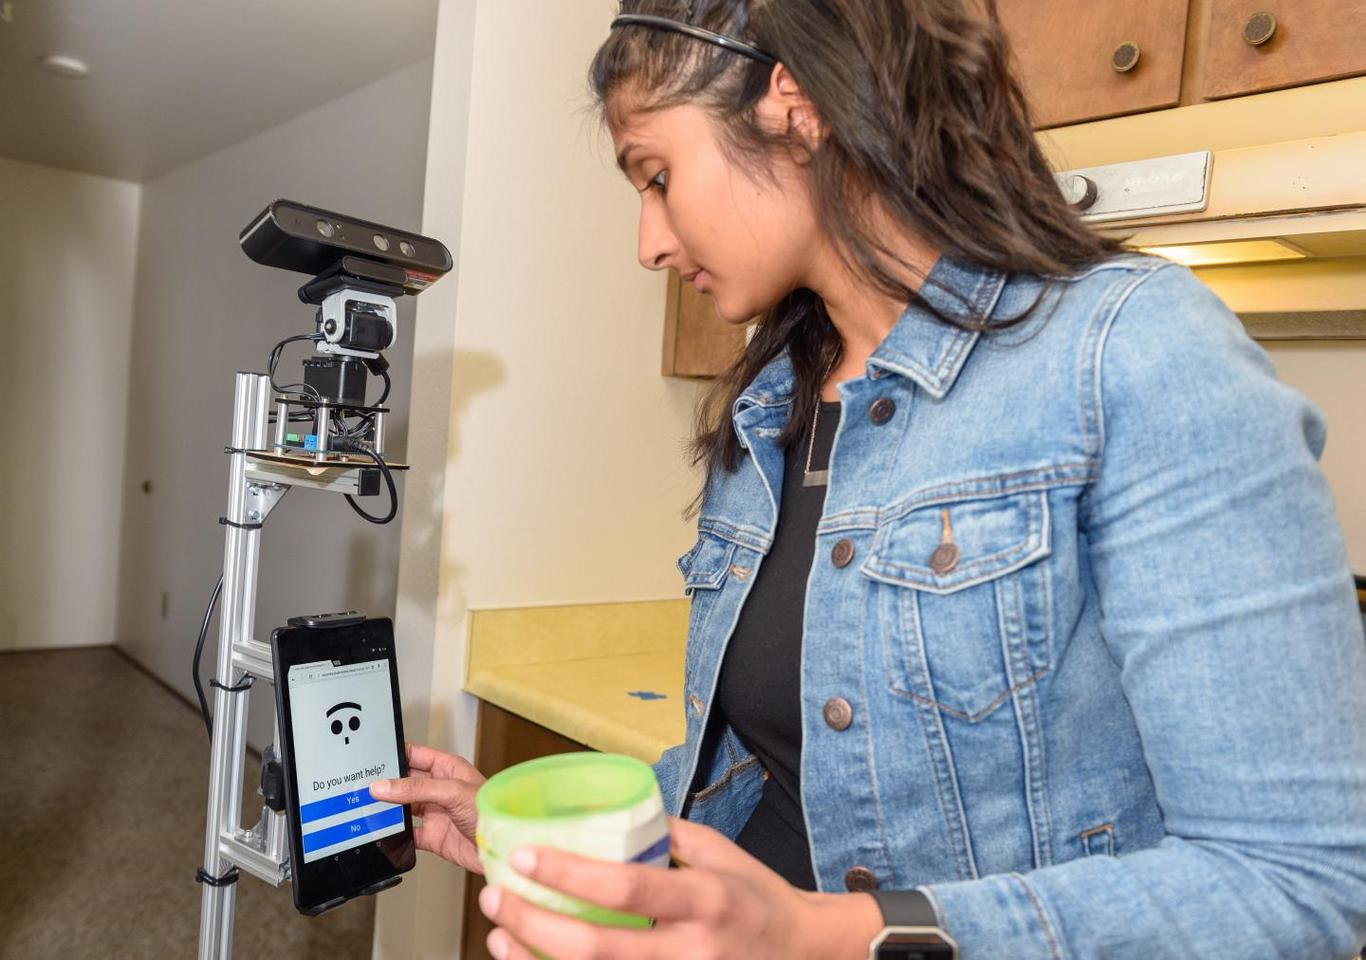 The assistive robot features a tablet interface